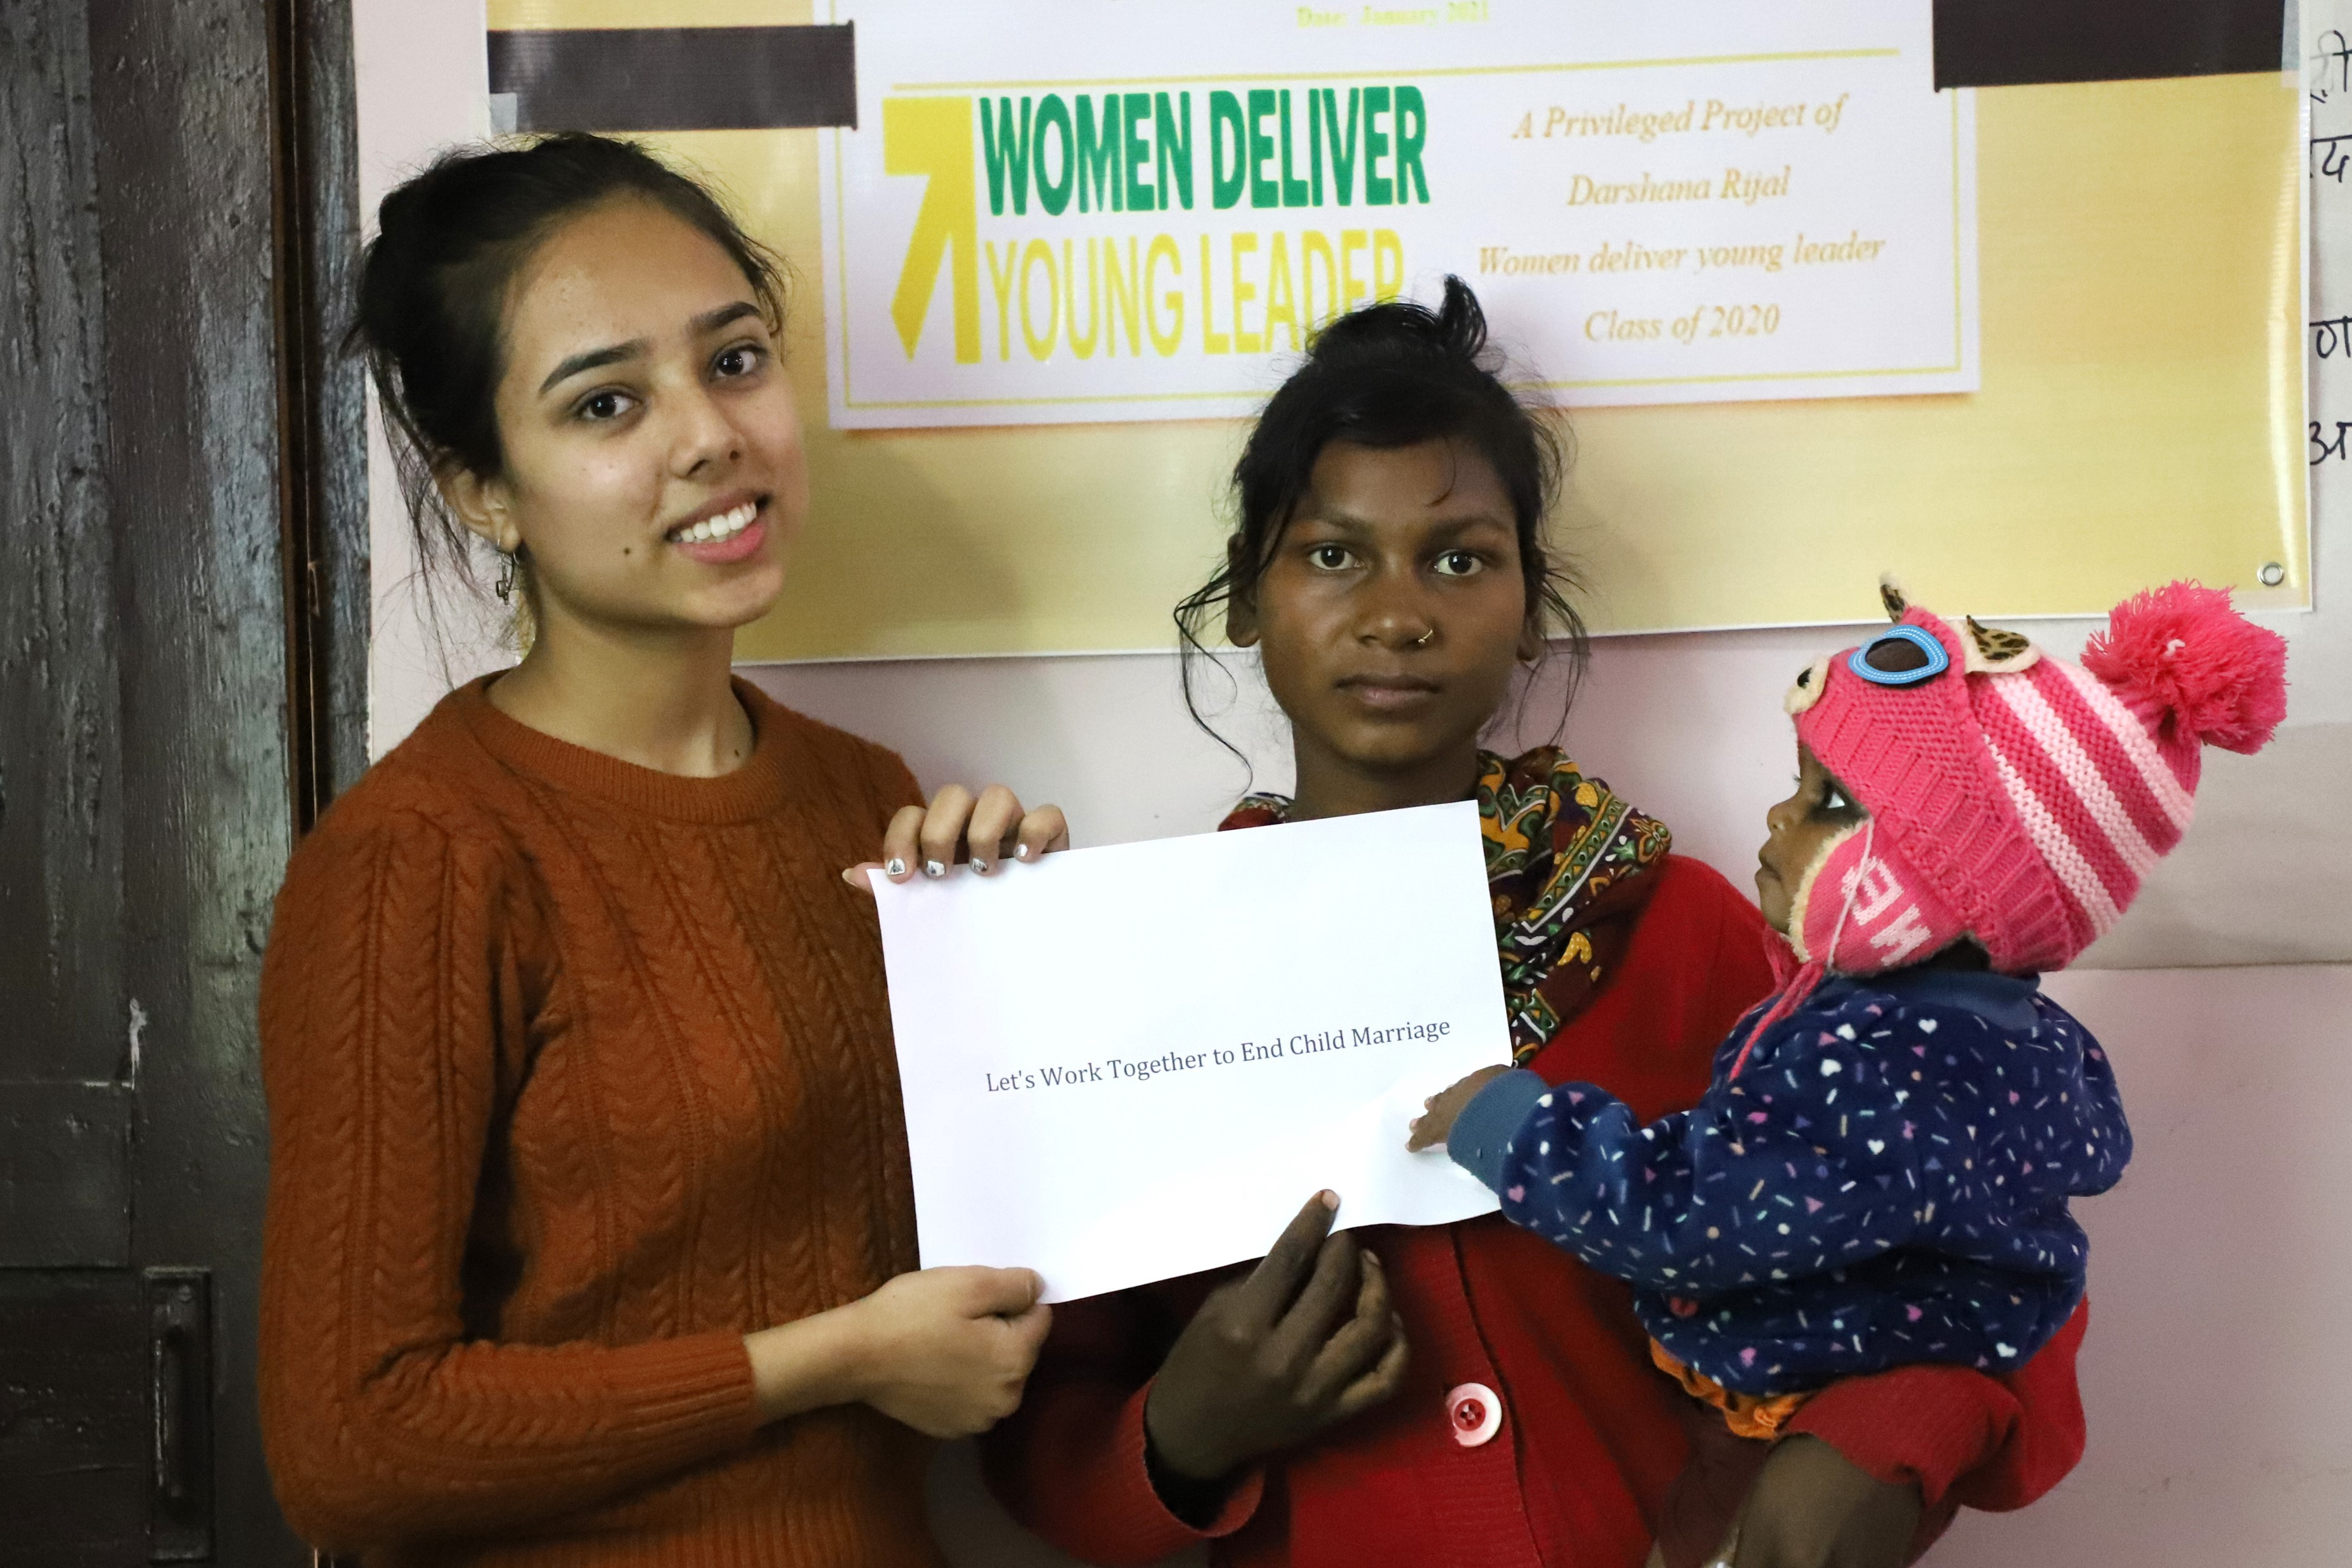 Darshana Rijal calling for an end to child marriage in Nepal.